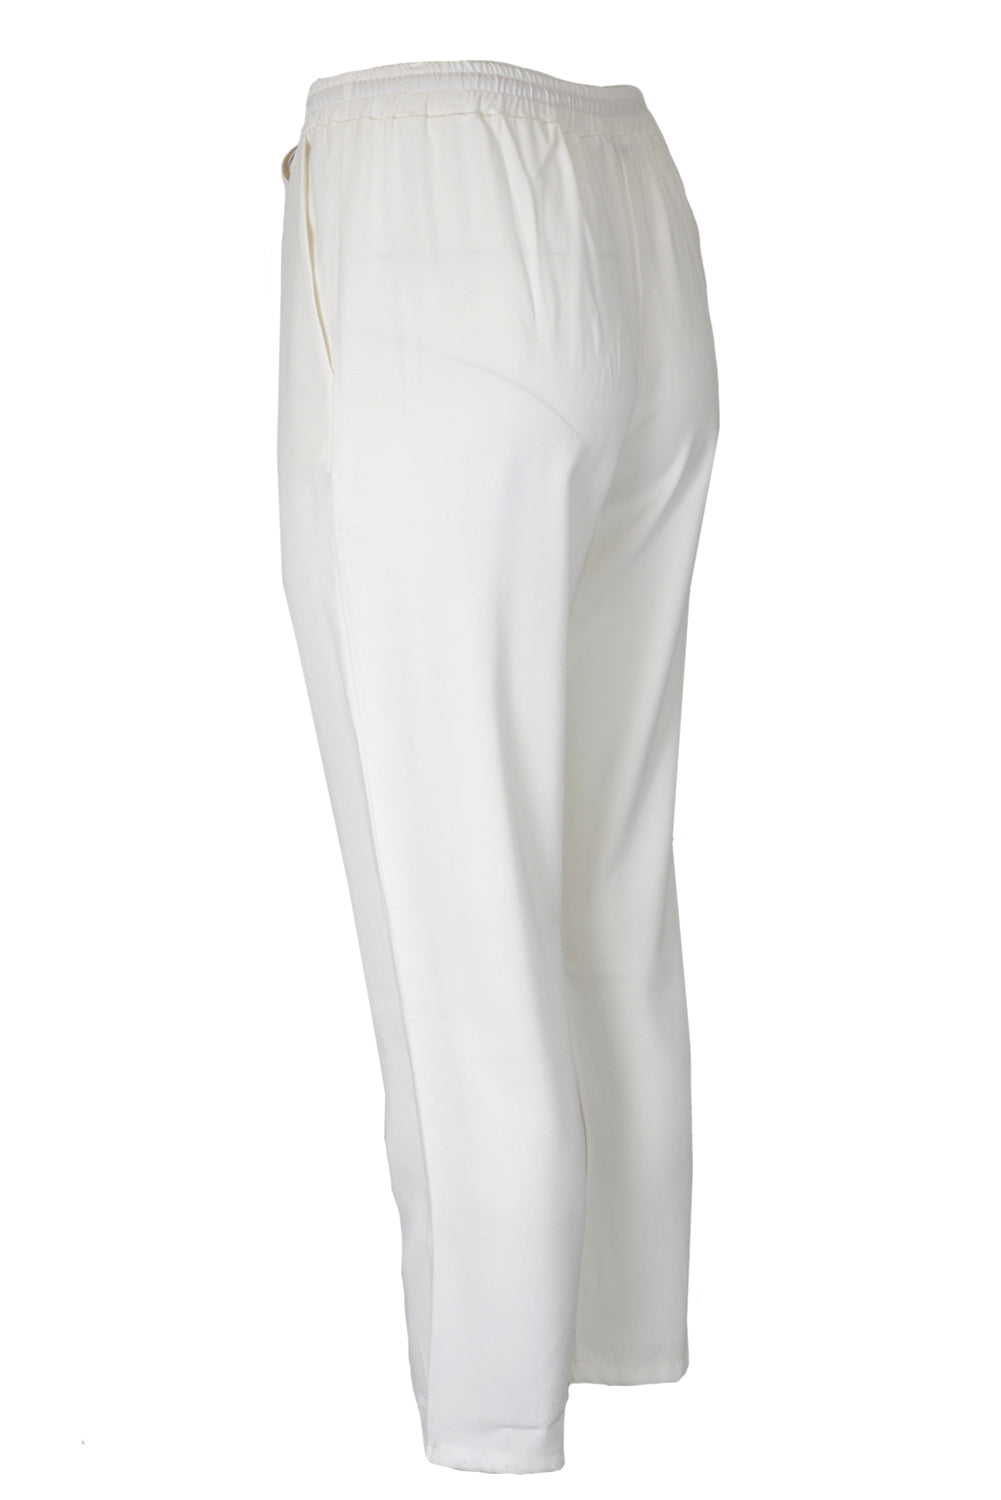 Suzy D Crepe Trousers White